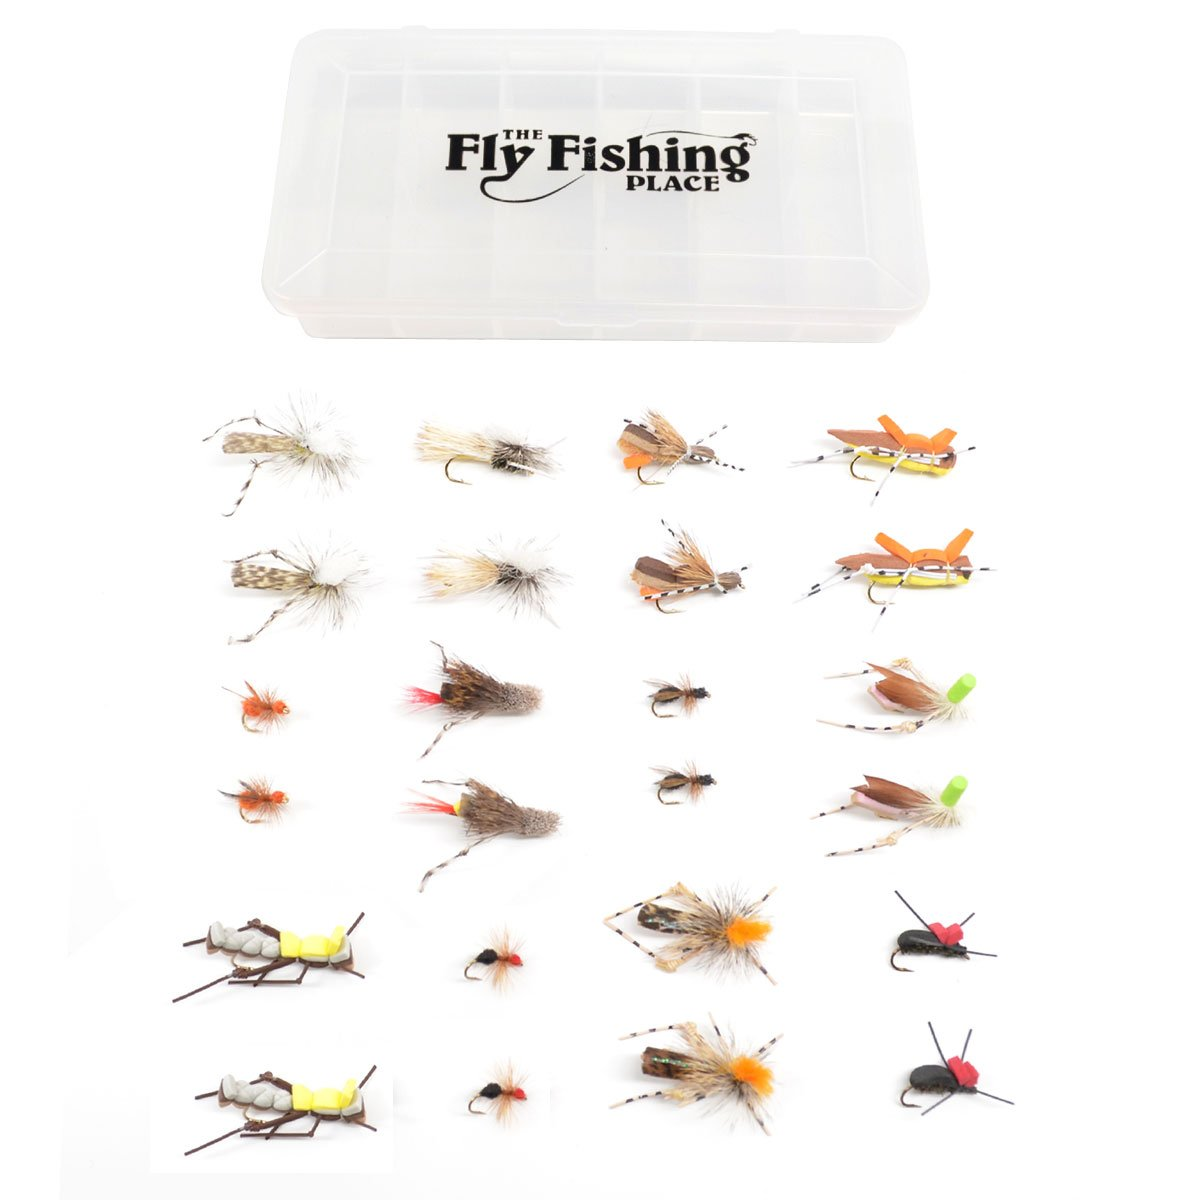 Includes Foam Hoppers Essential Terrestrials Fly Fishing Flies Collection Beetles 2 Dozen Trout Flies with Fly Box and Cicadas Trout Fly Assortment Ants